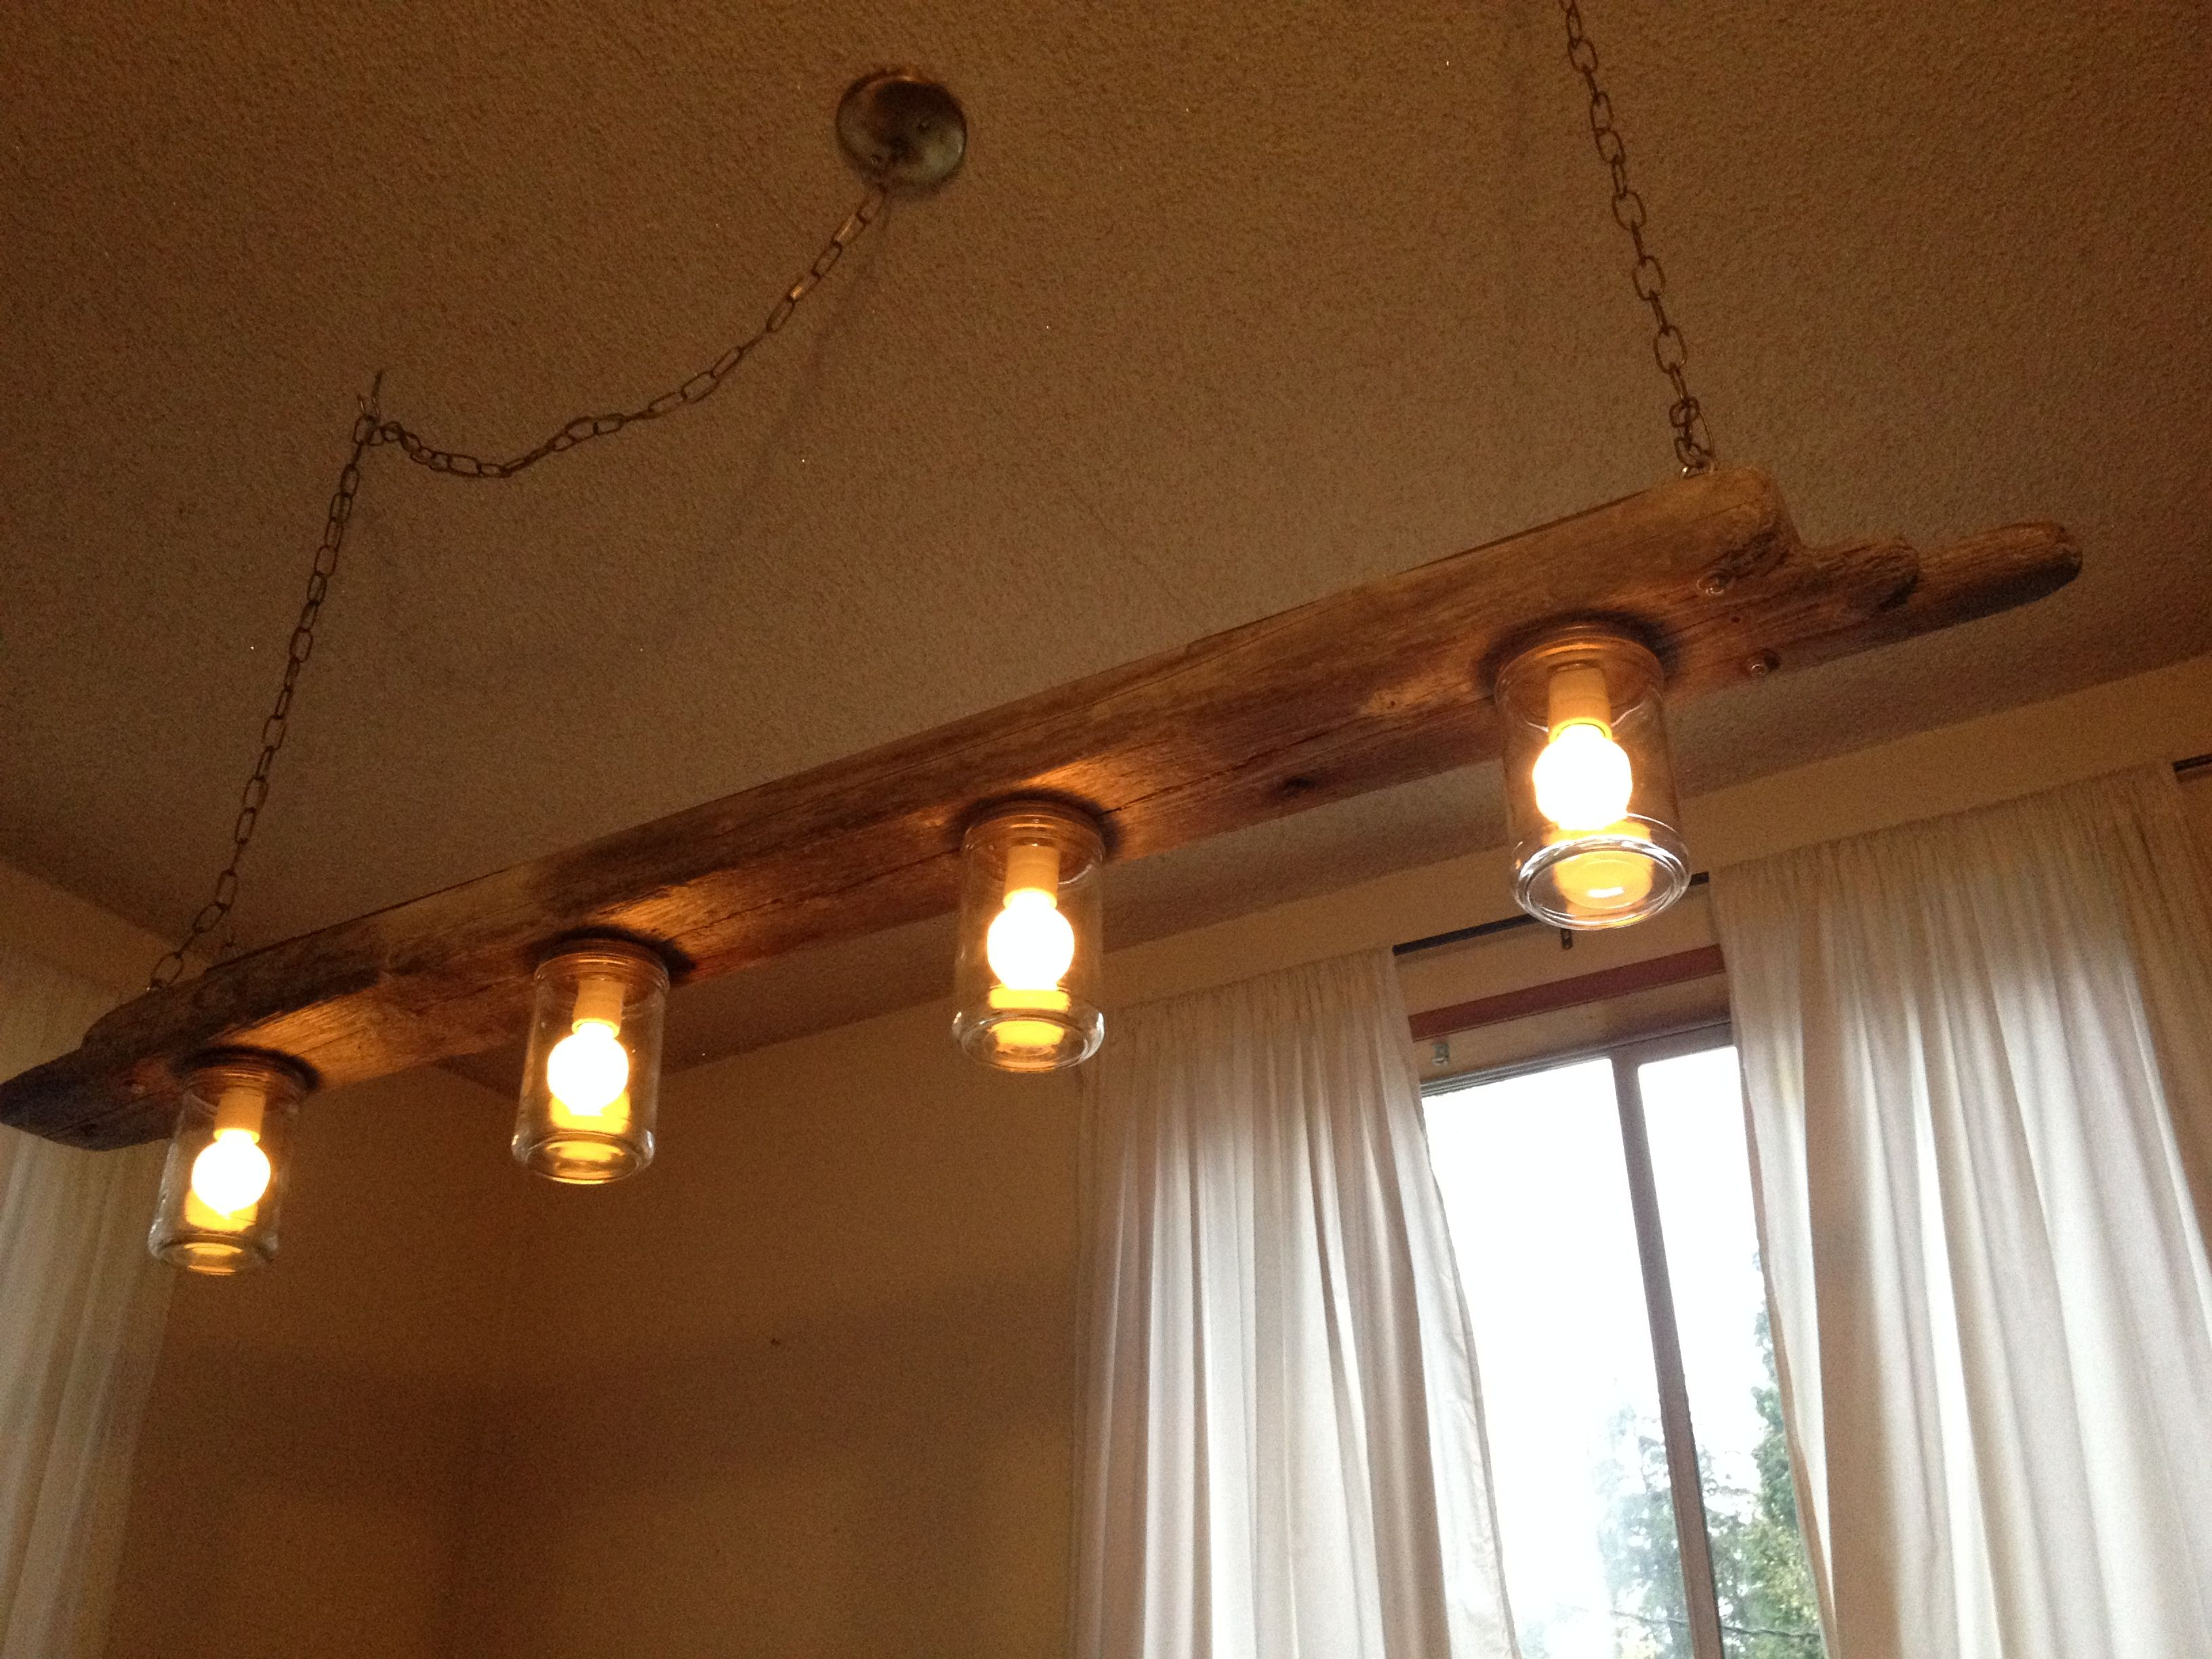 driftwood pendant light https://www.etsy/shop/fransarstudio